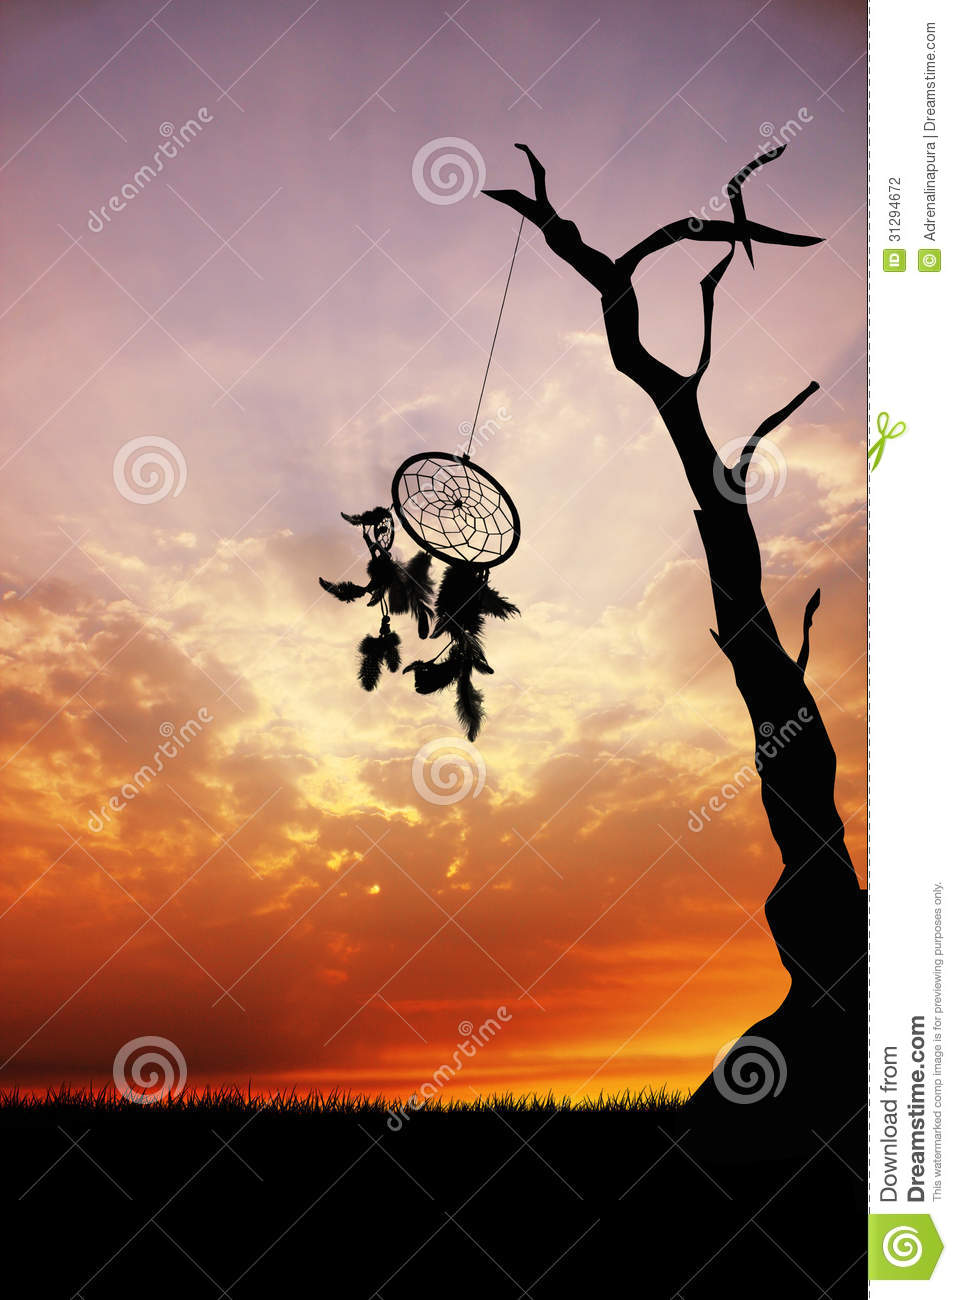 Dreamcatcher Stock Photography - Image: 31294672